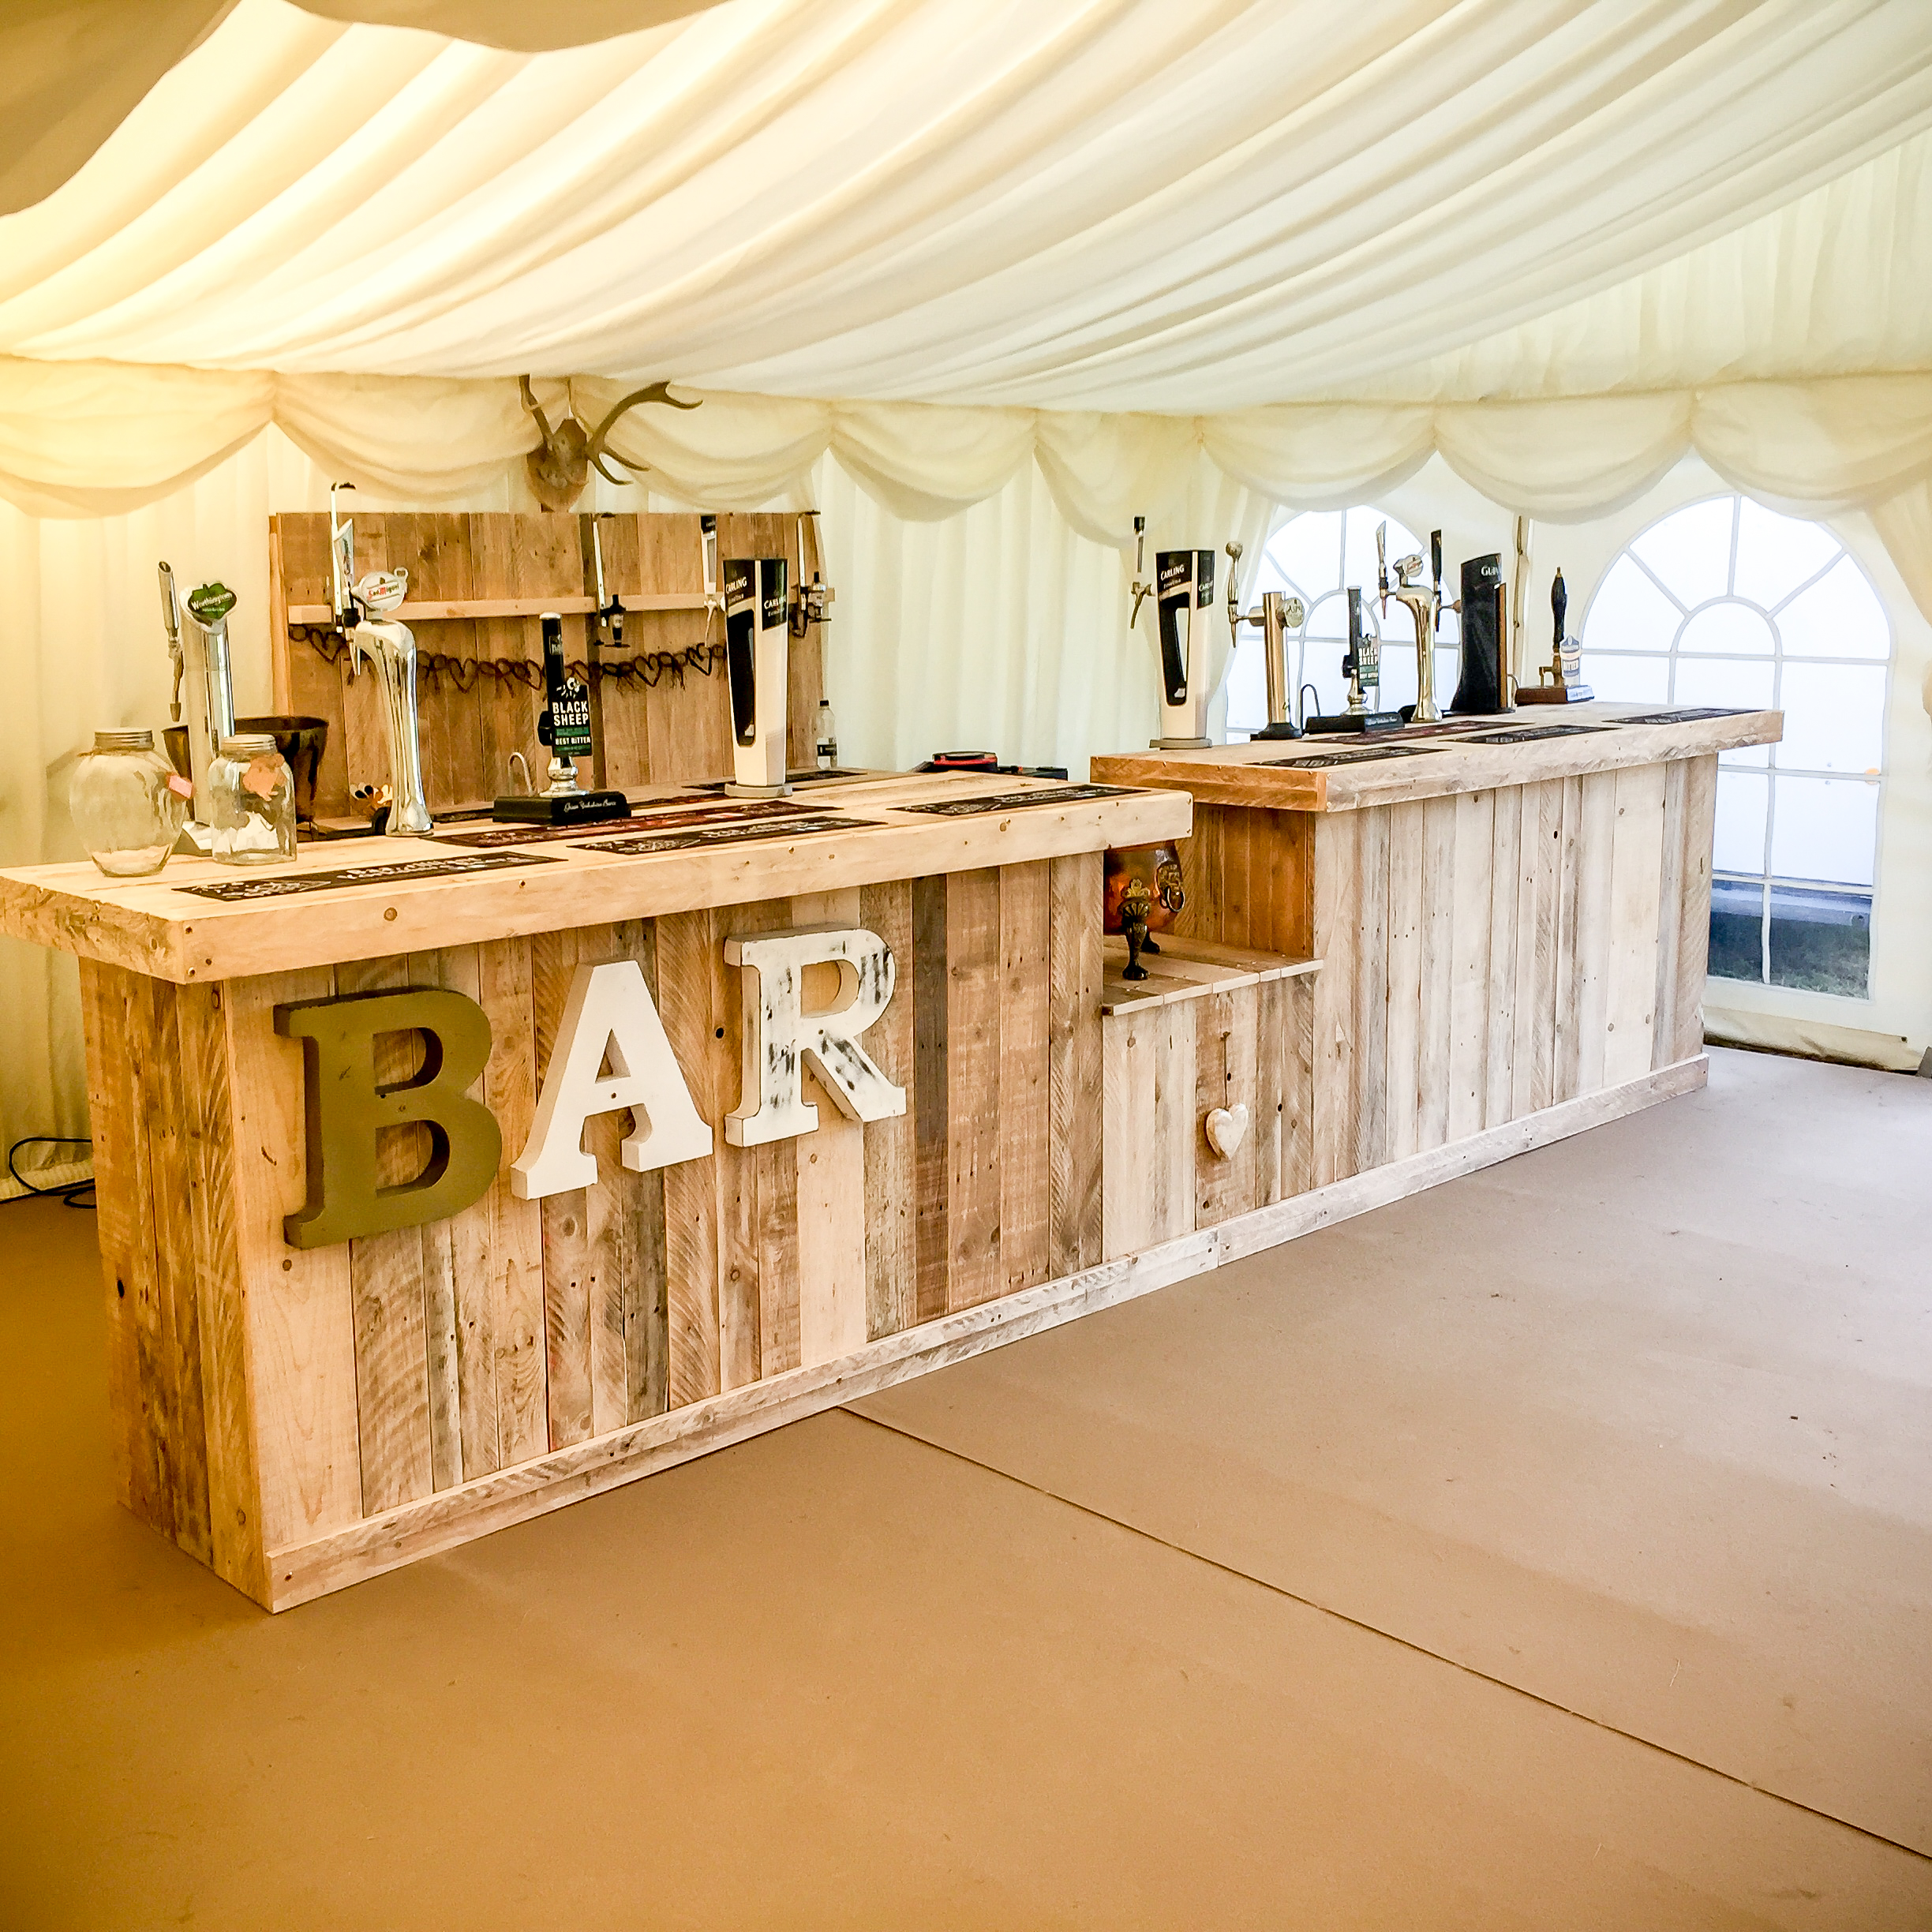 cornwall-wedding-bar-1